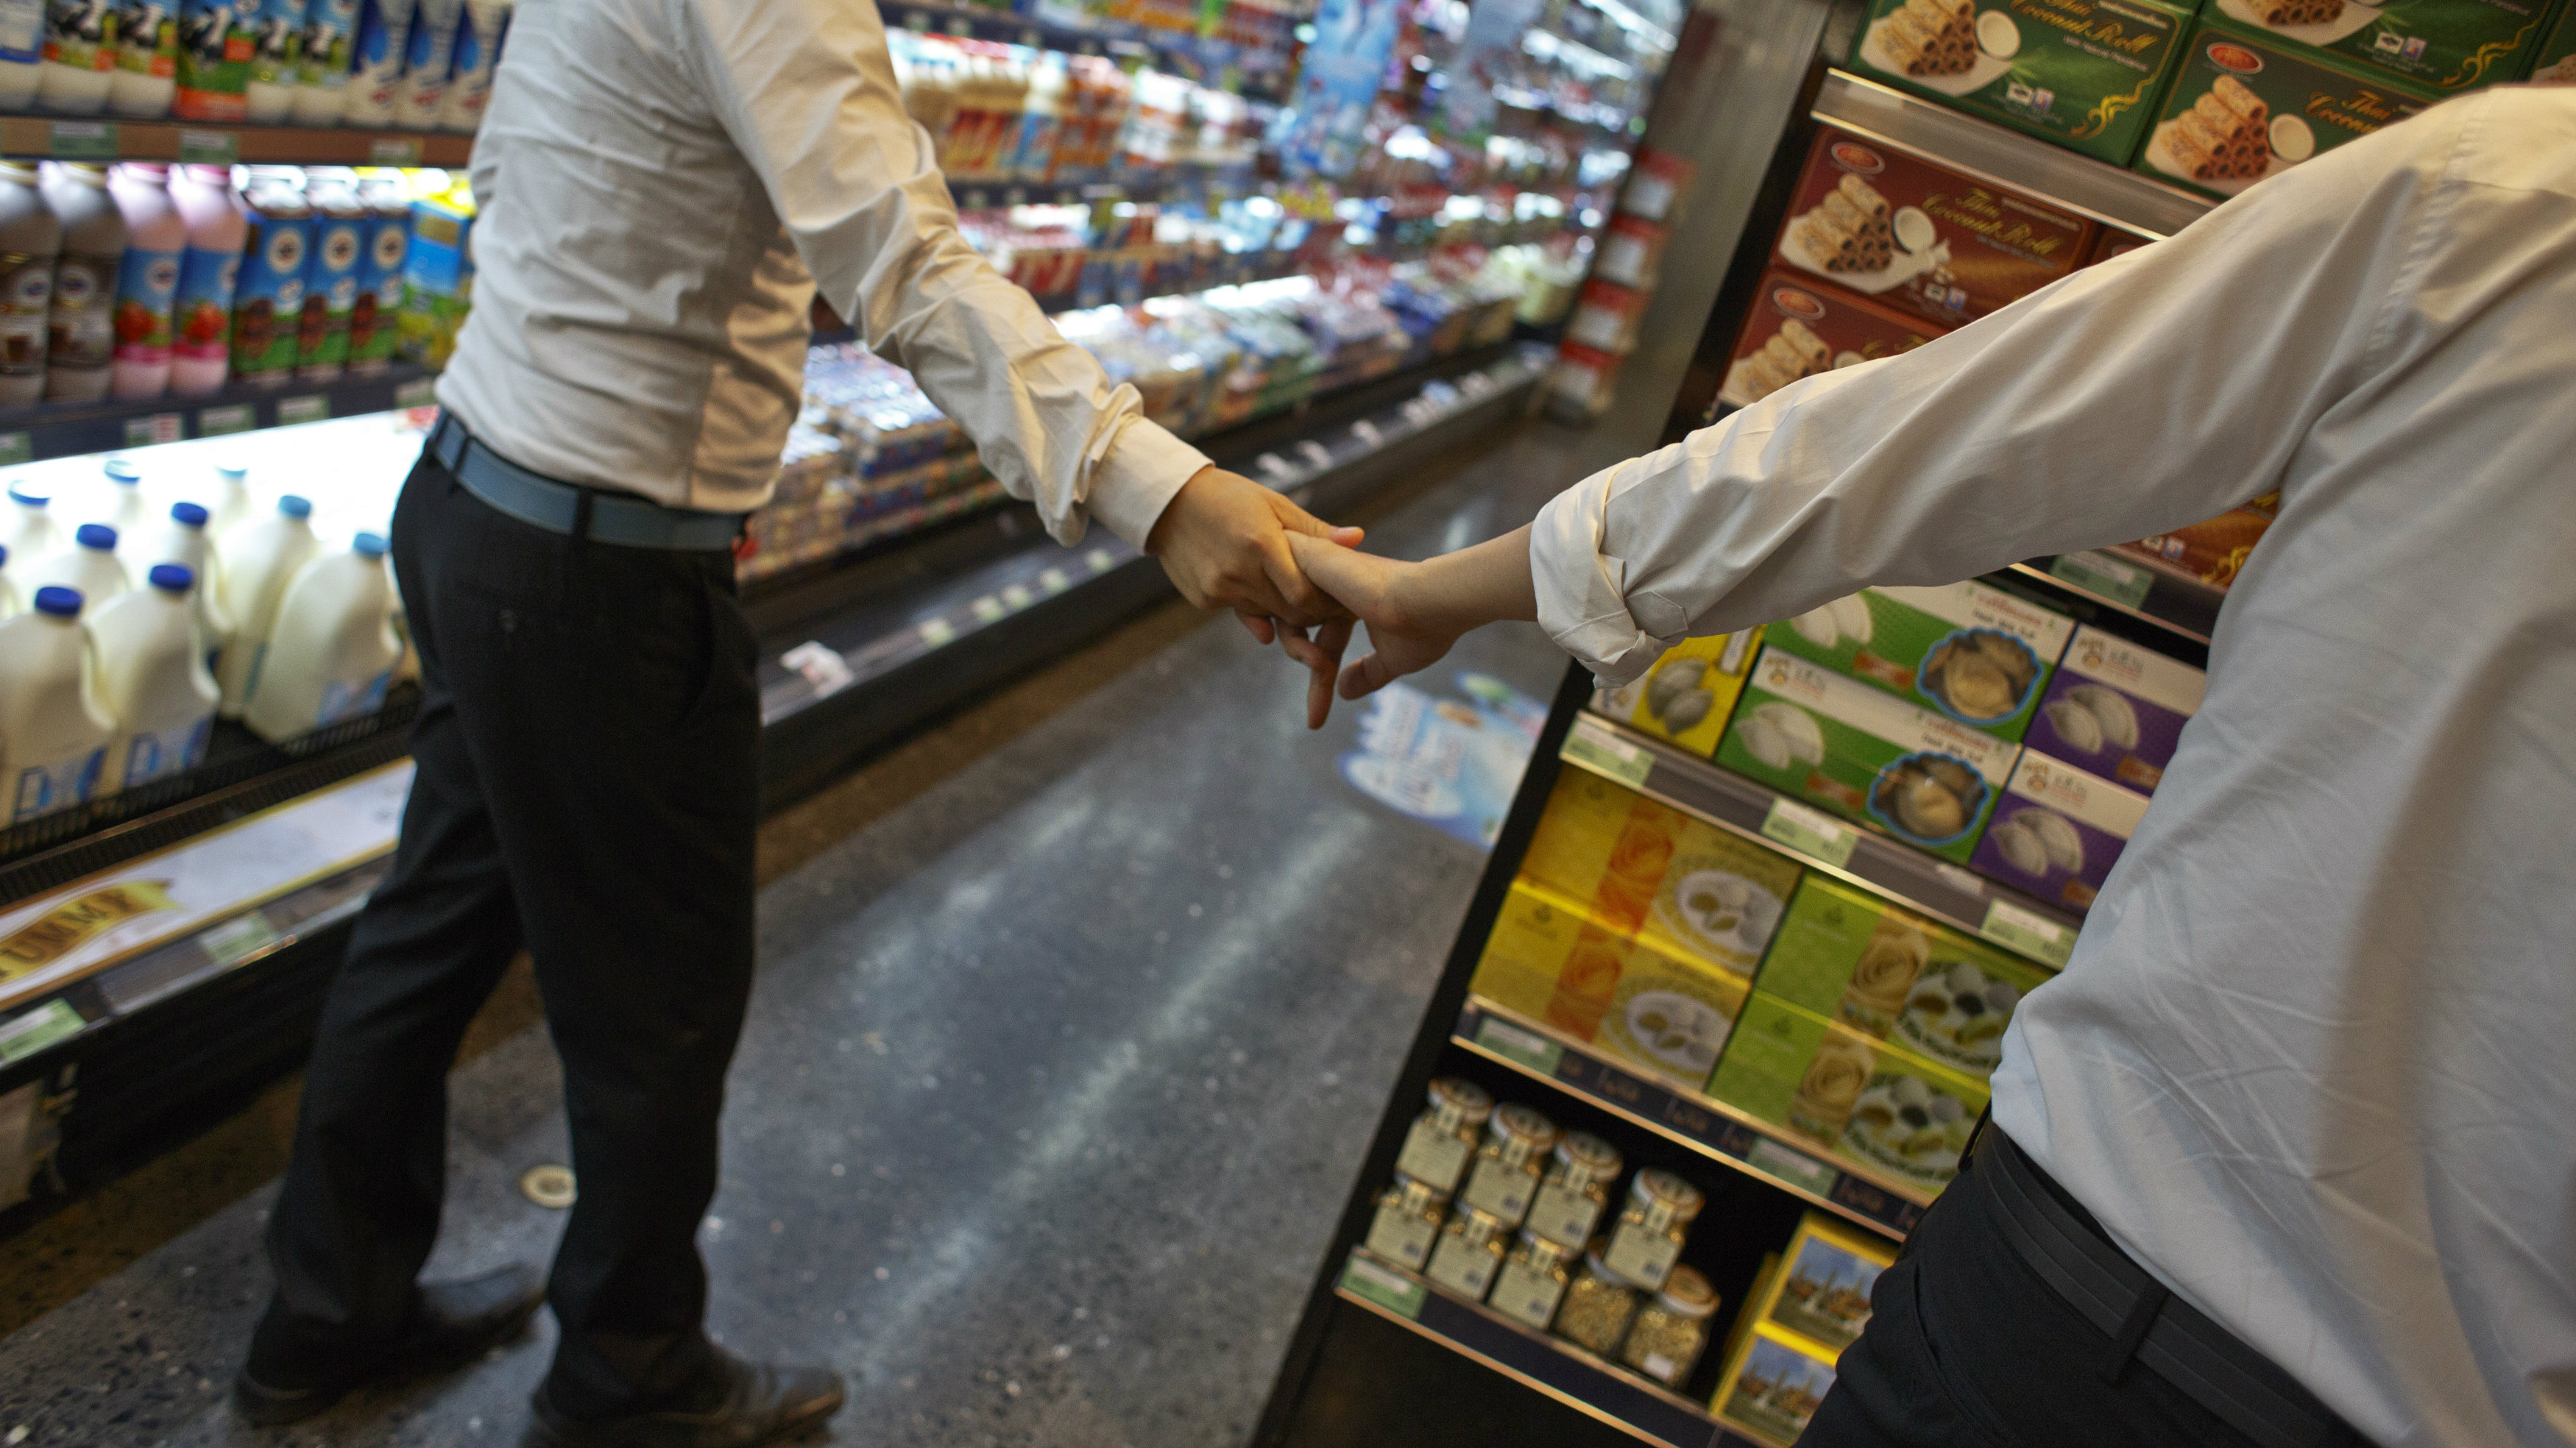 Men holding hands in grocery store